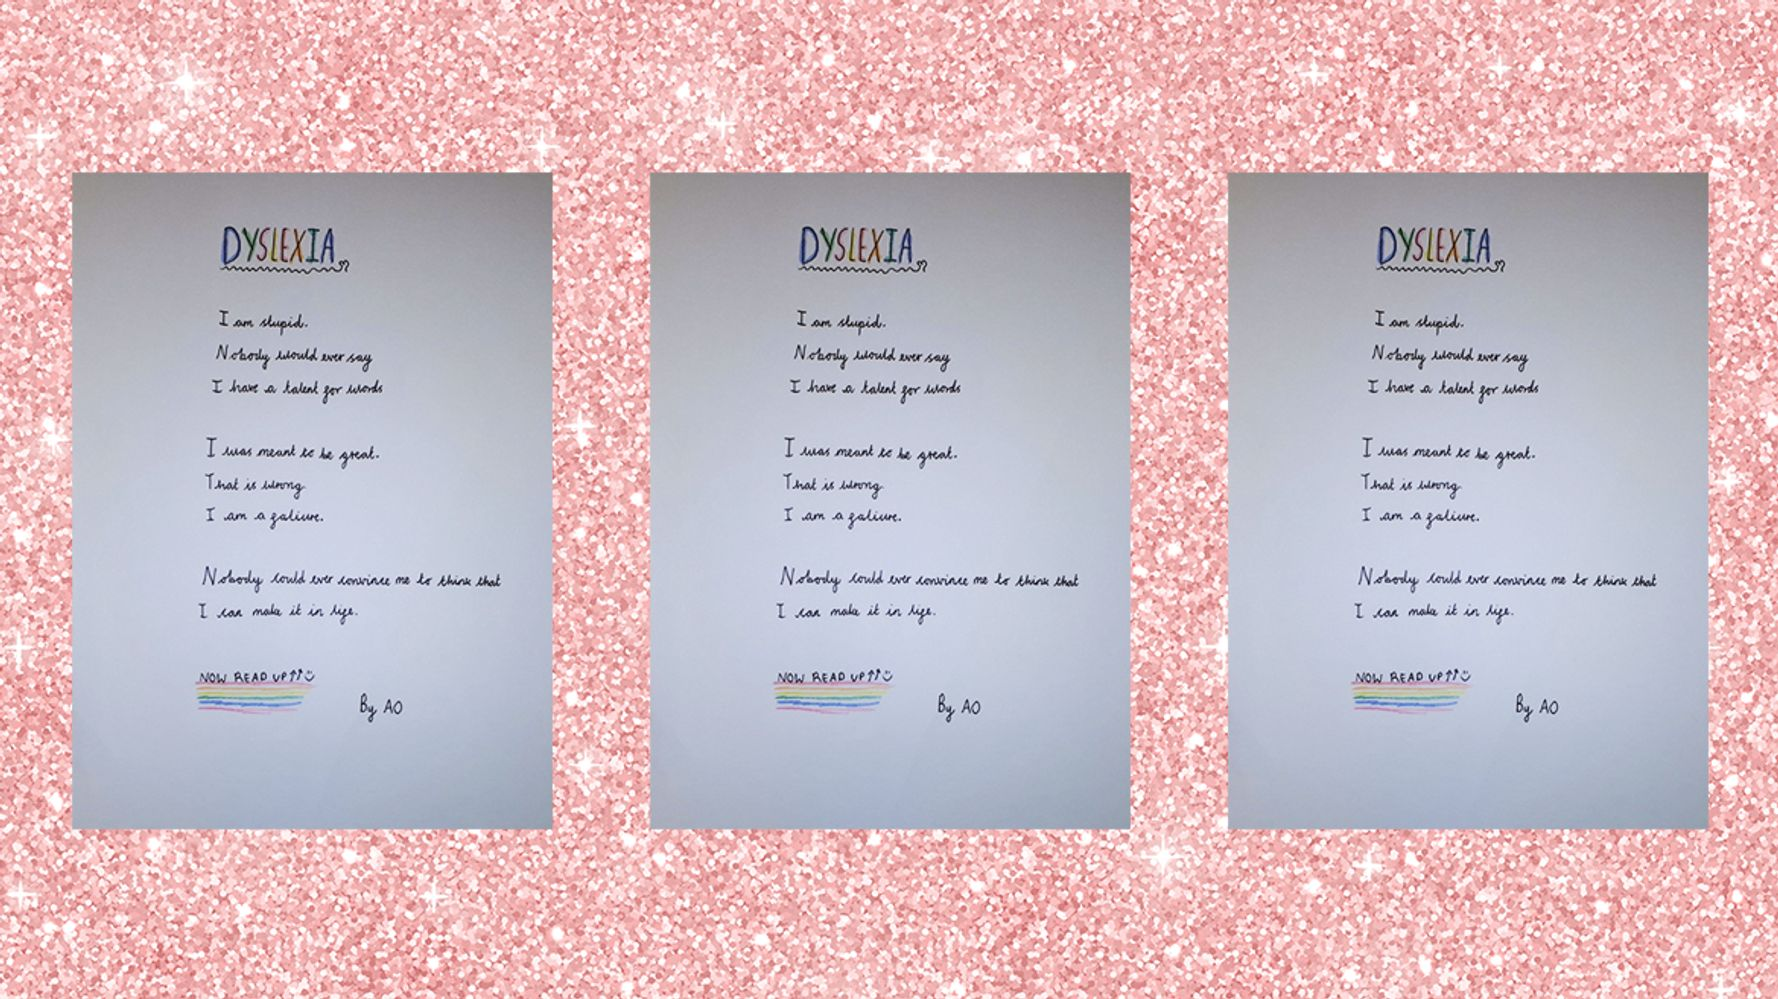 Everyone Is Stunned By This Dyslexia Poem Written By A 10-Year-Old